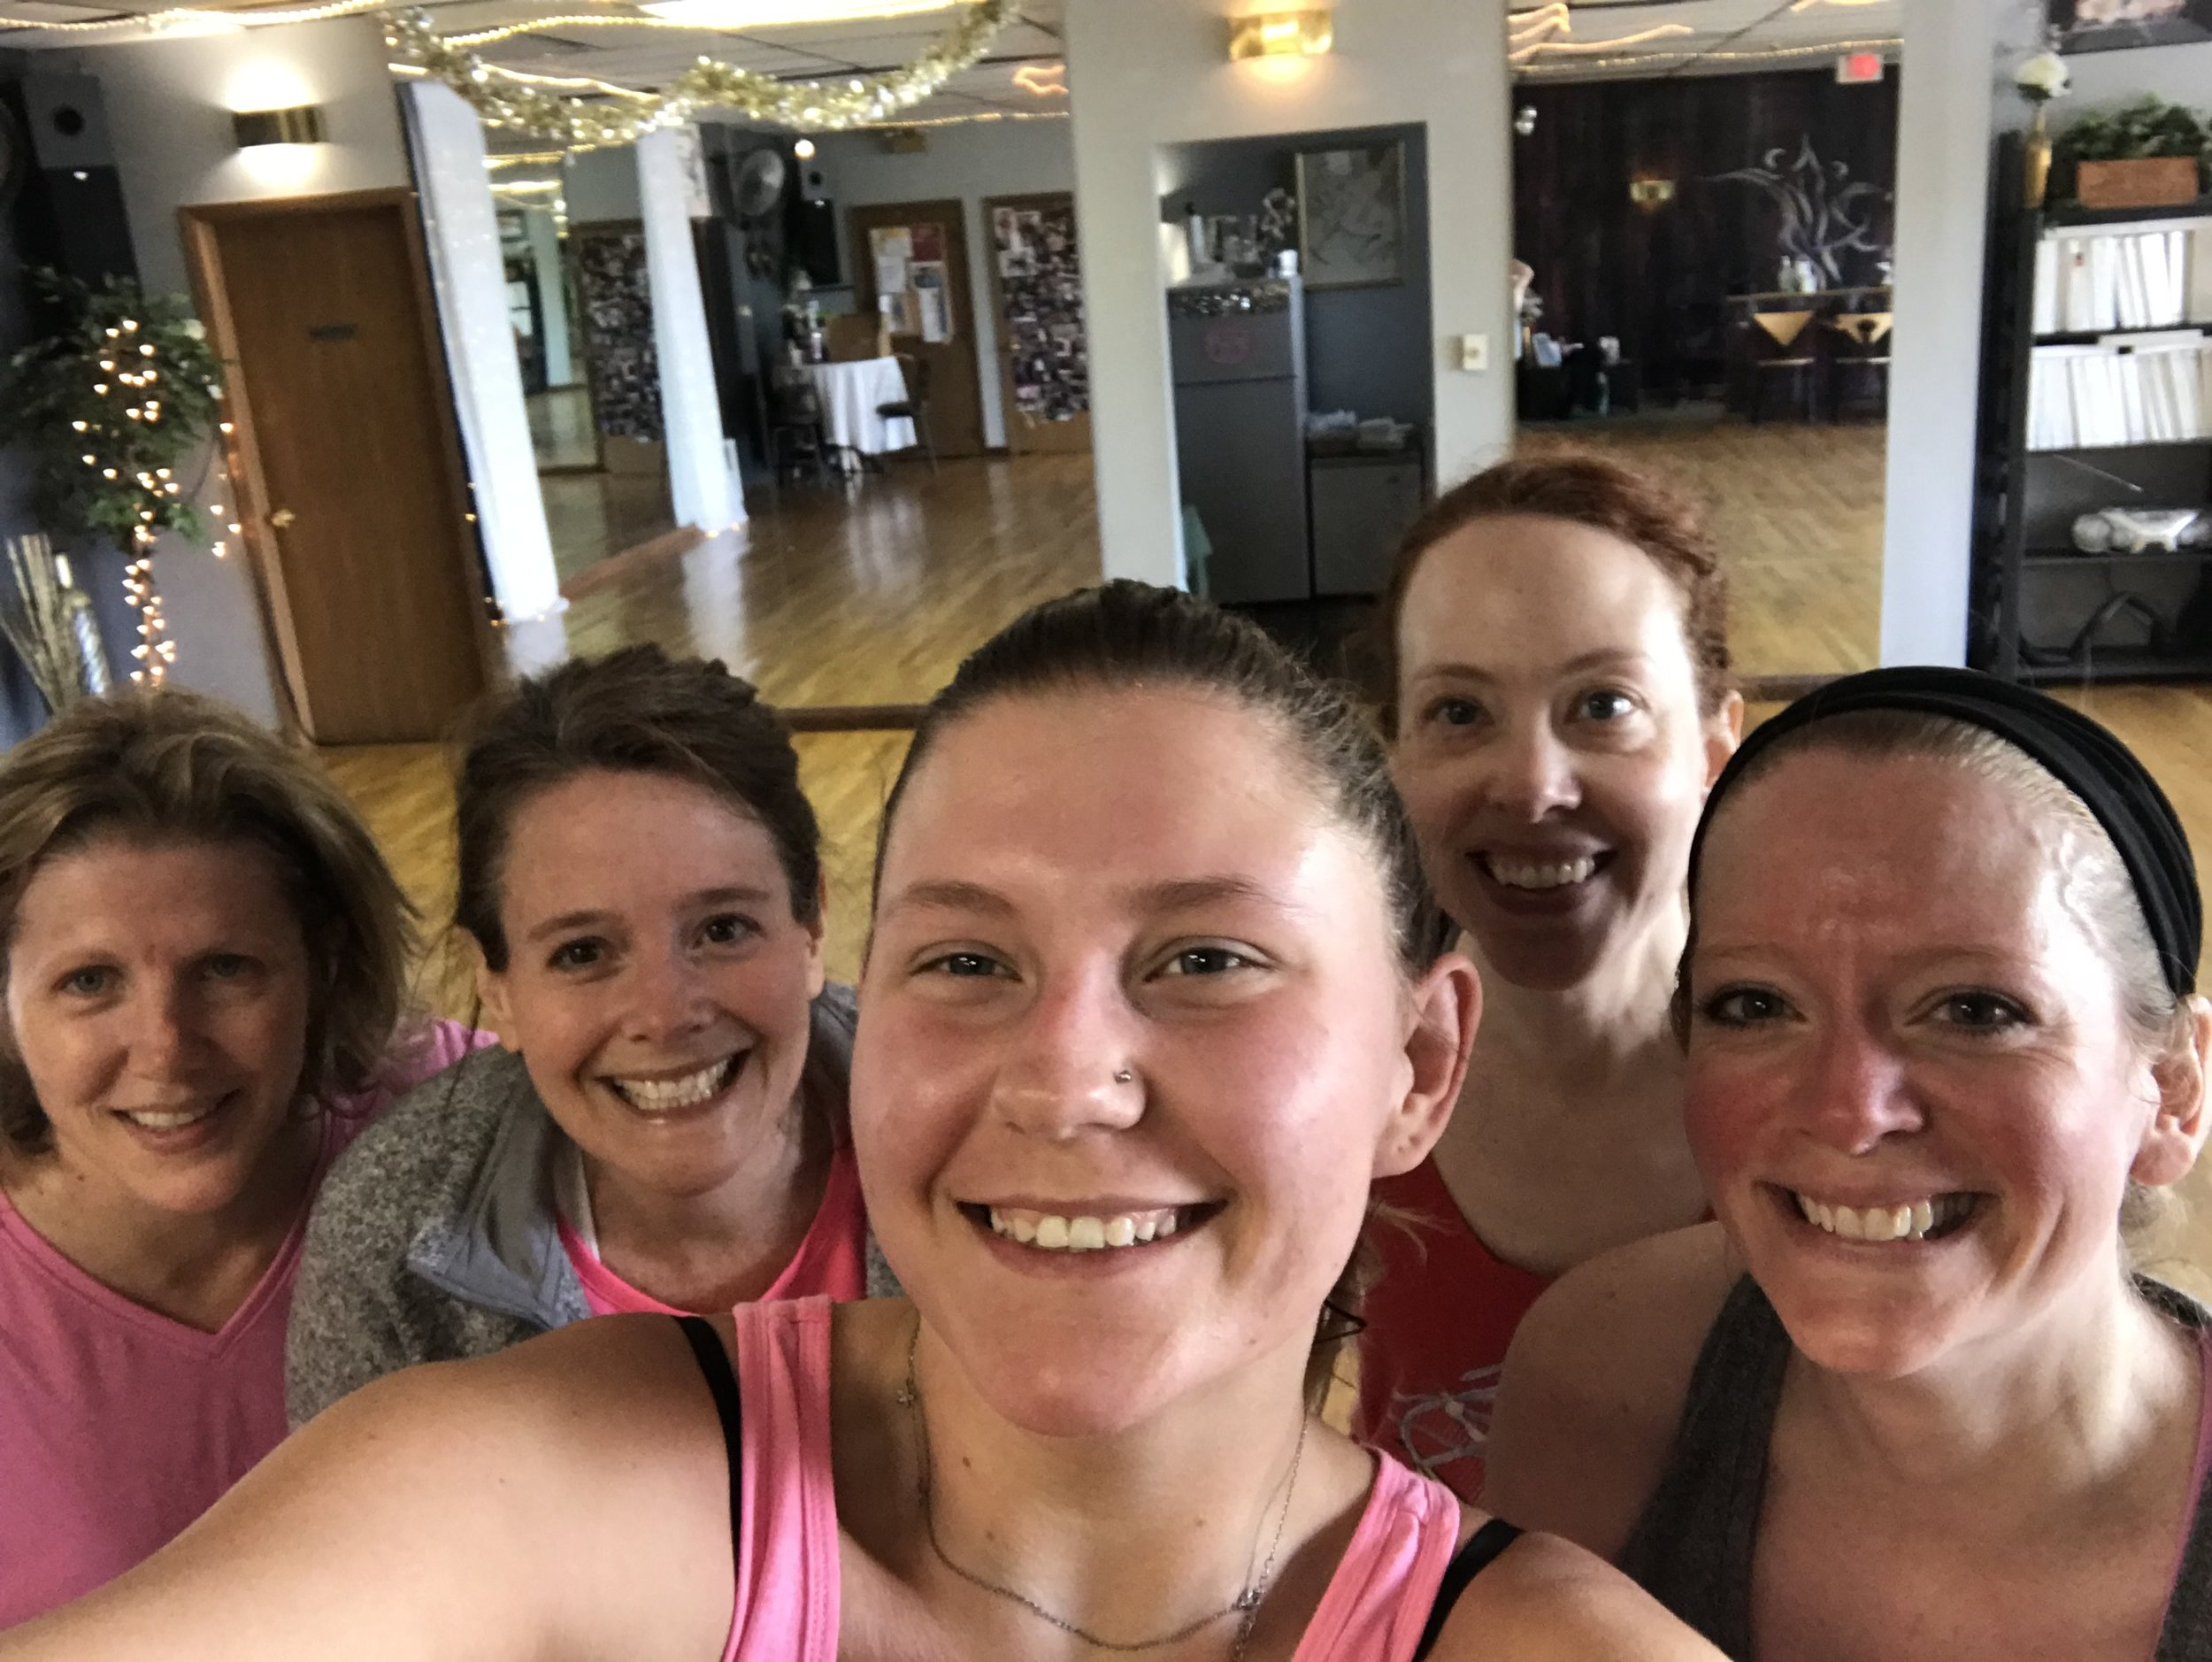 """Sara & Beth, - -'This most fun I've had working out! Great music, challenging routines, and a friendly environment - this is a class that I actually miss if I skip a week. If you love dancing and having a blast while exercising, definitely give it a try!""""-""""If you like to smile & sweat come to this class! Everyone makes you feel very welcome and is supportive."""""""